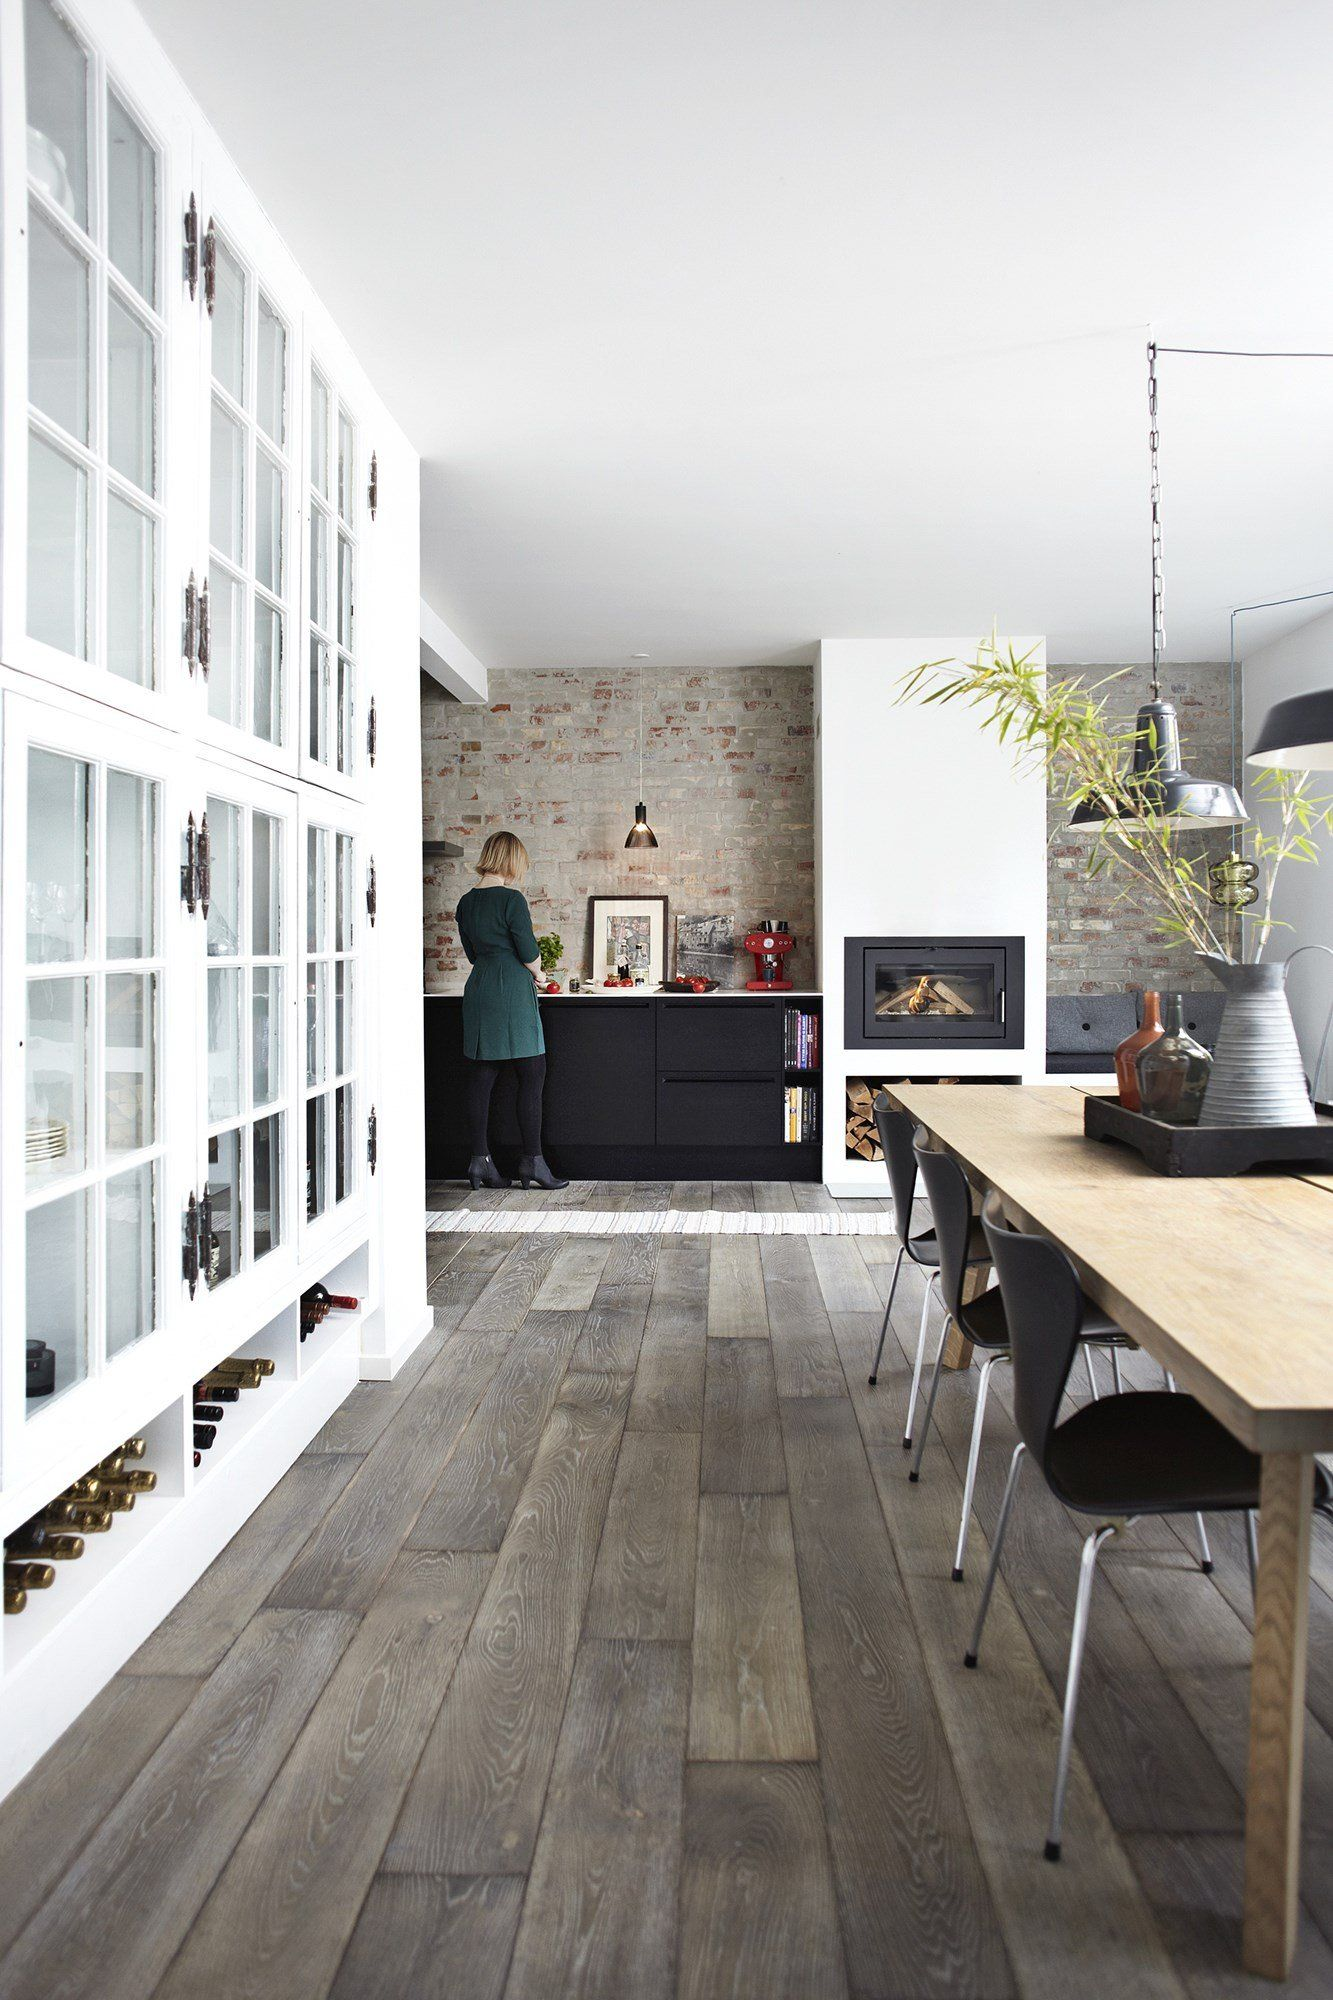 Fireplace + Exposed Brick + Kitchen Joinery